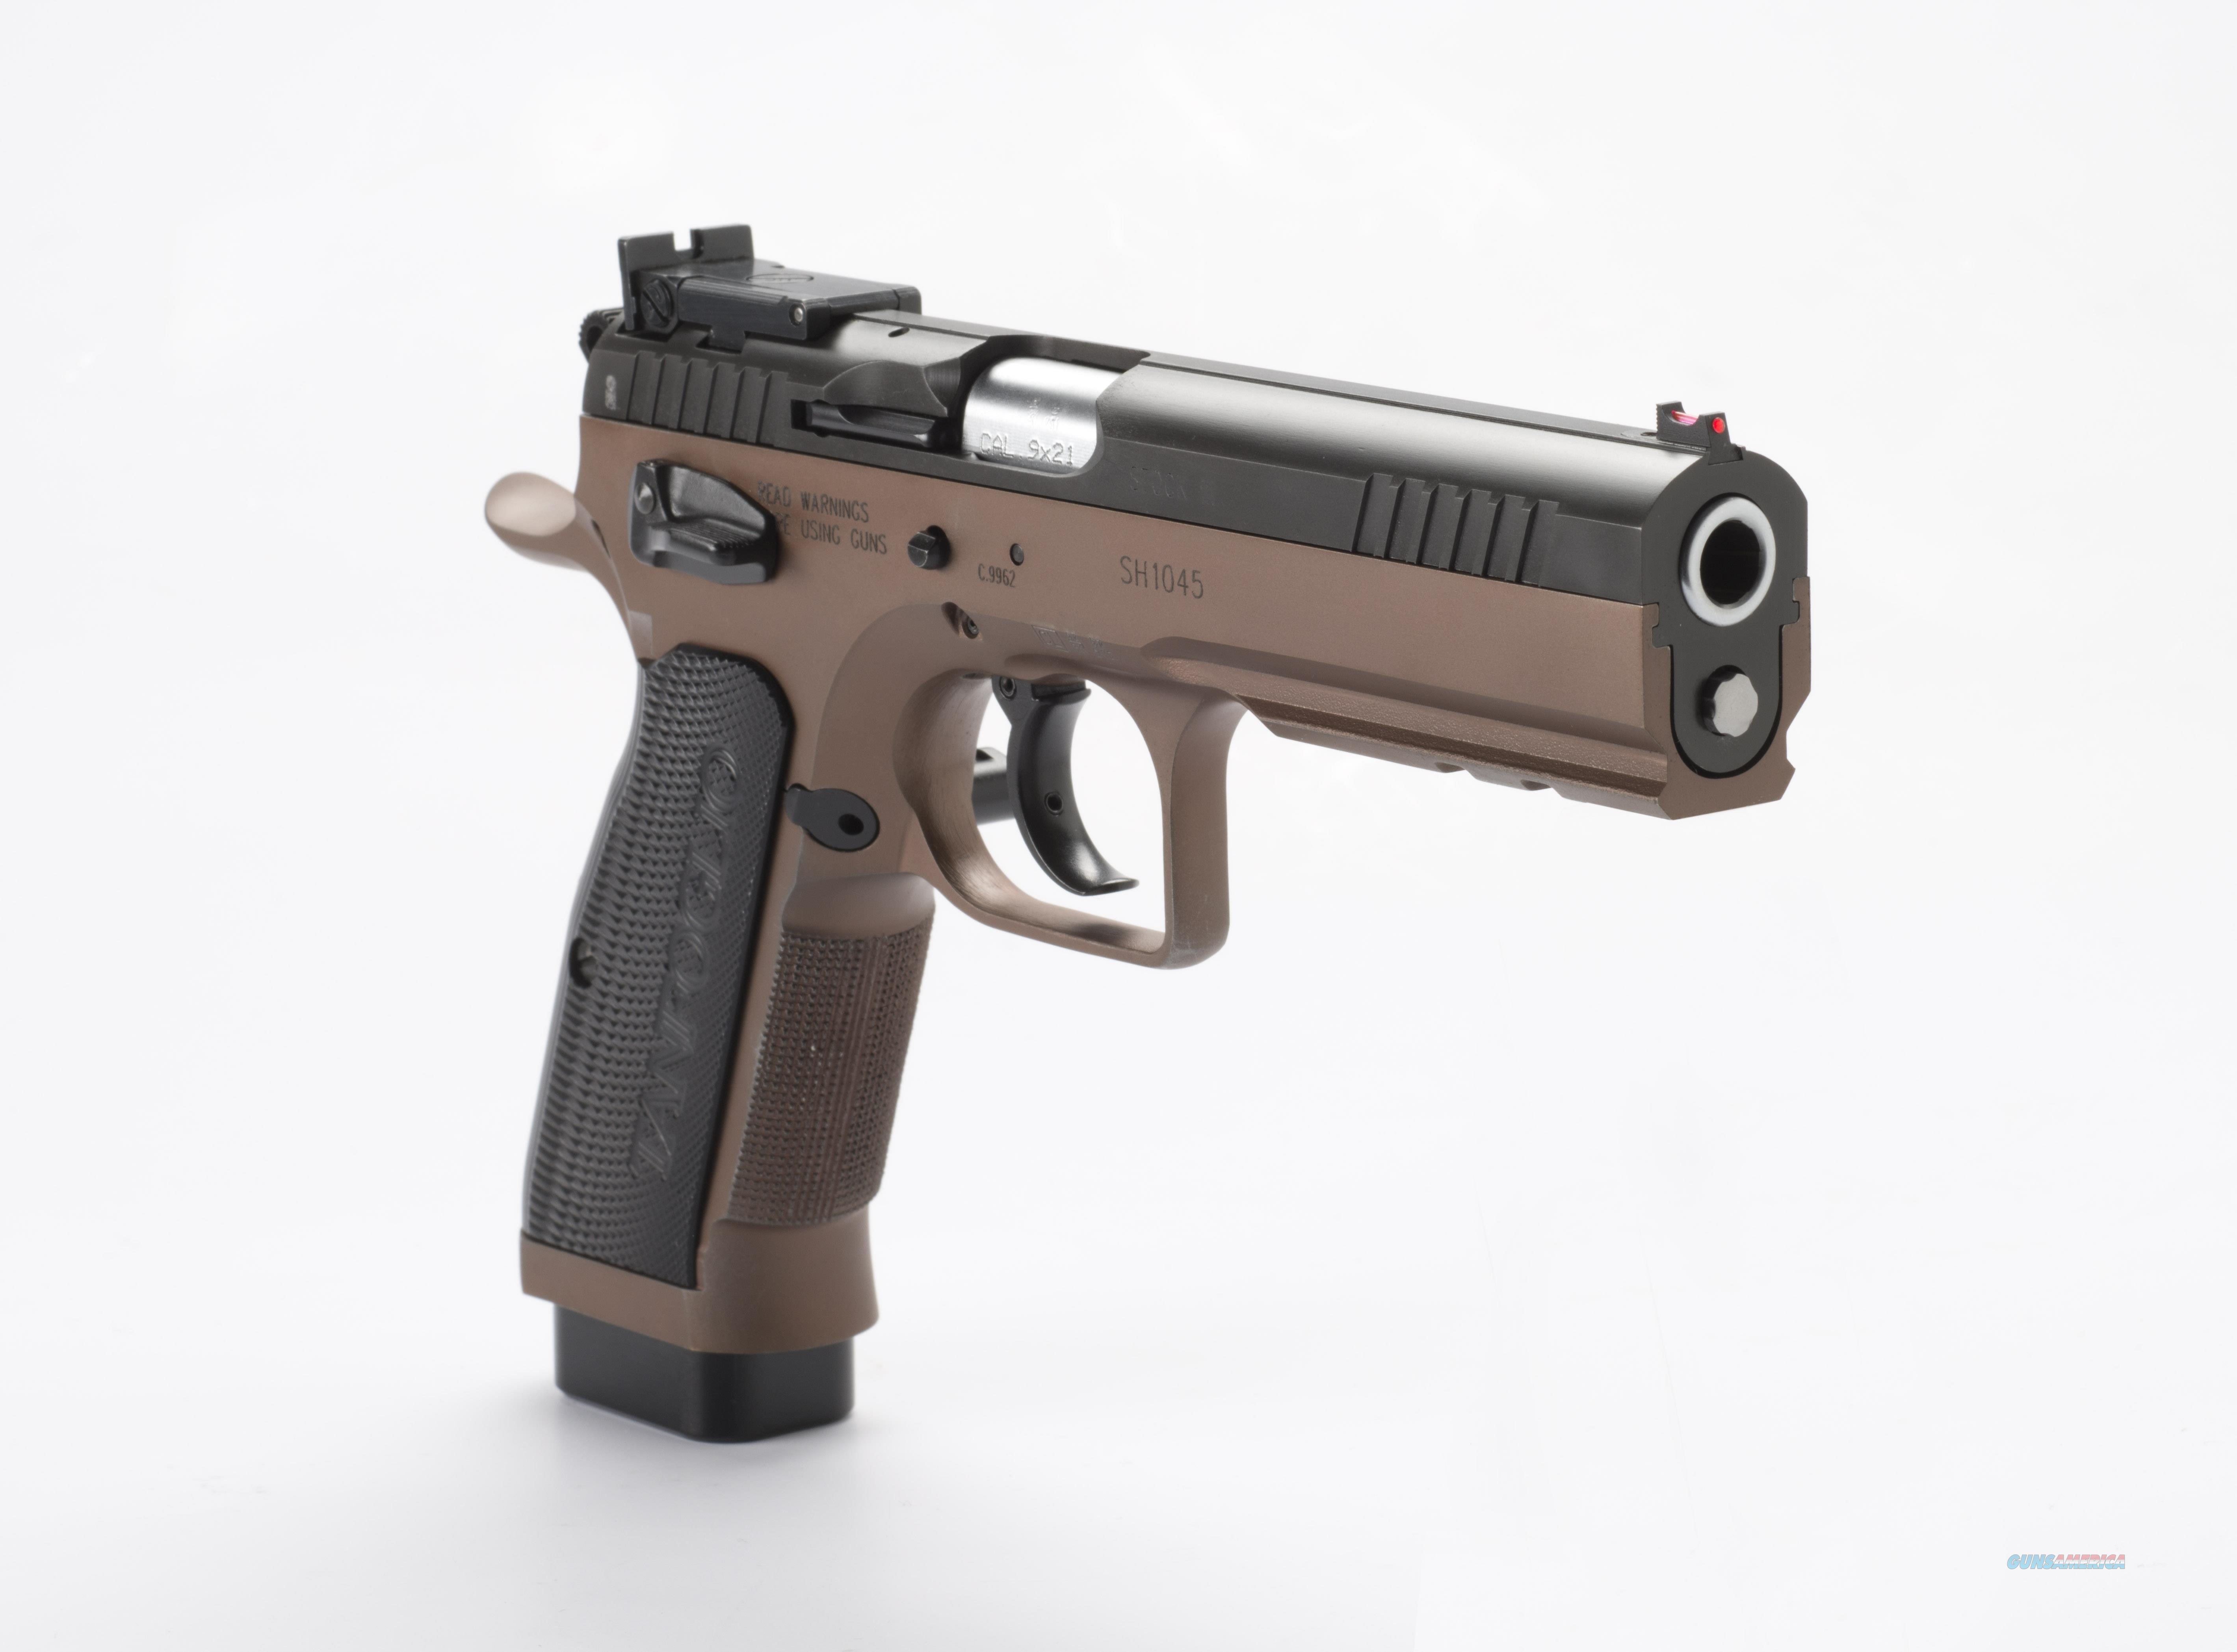 *NEW* EAA WITNESS STOCK 3 XTREME 9MM 610595 - Tanfoglio  Guns > Pistols > EAA Pistols > Other